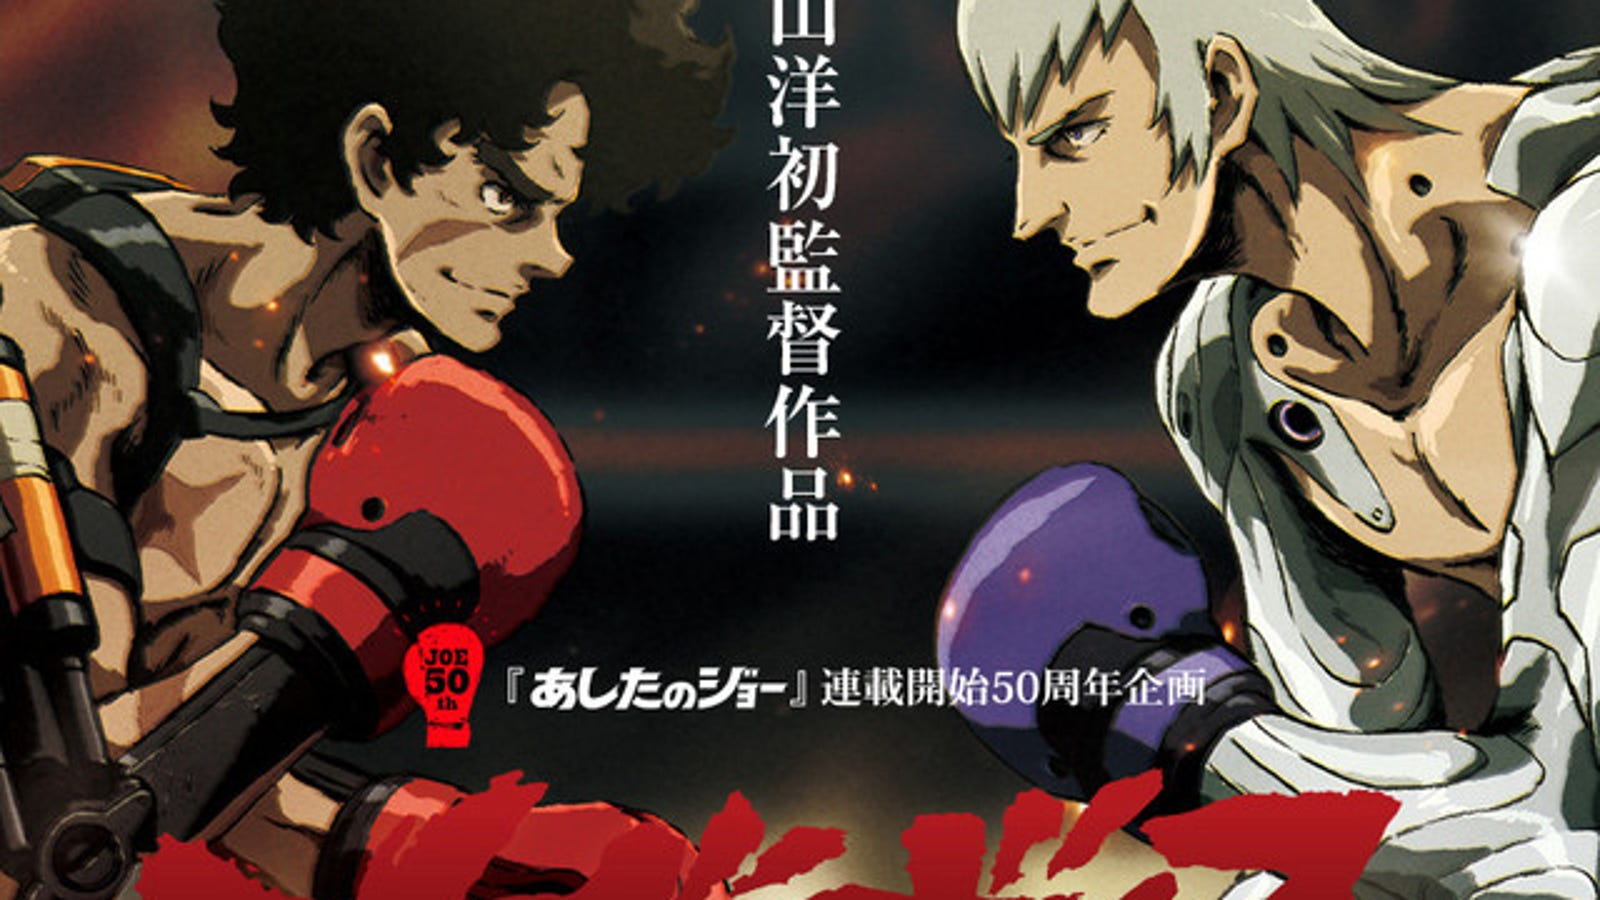 Enjoy the newest trailer of megalo boxs anime